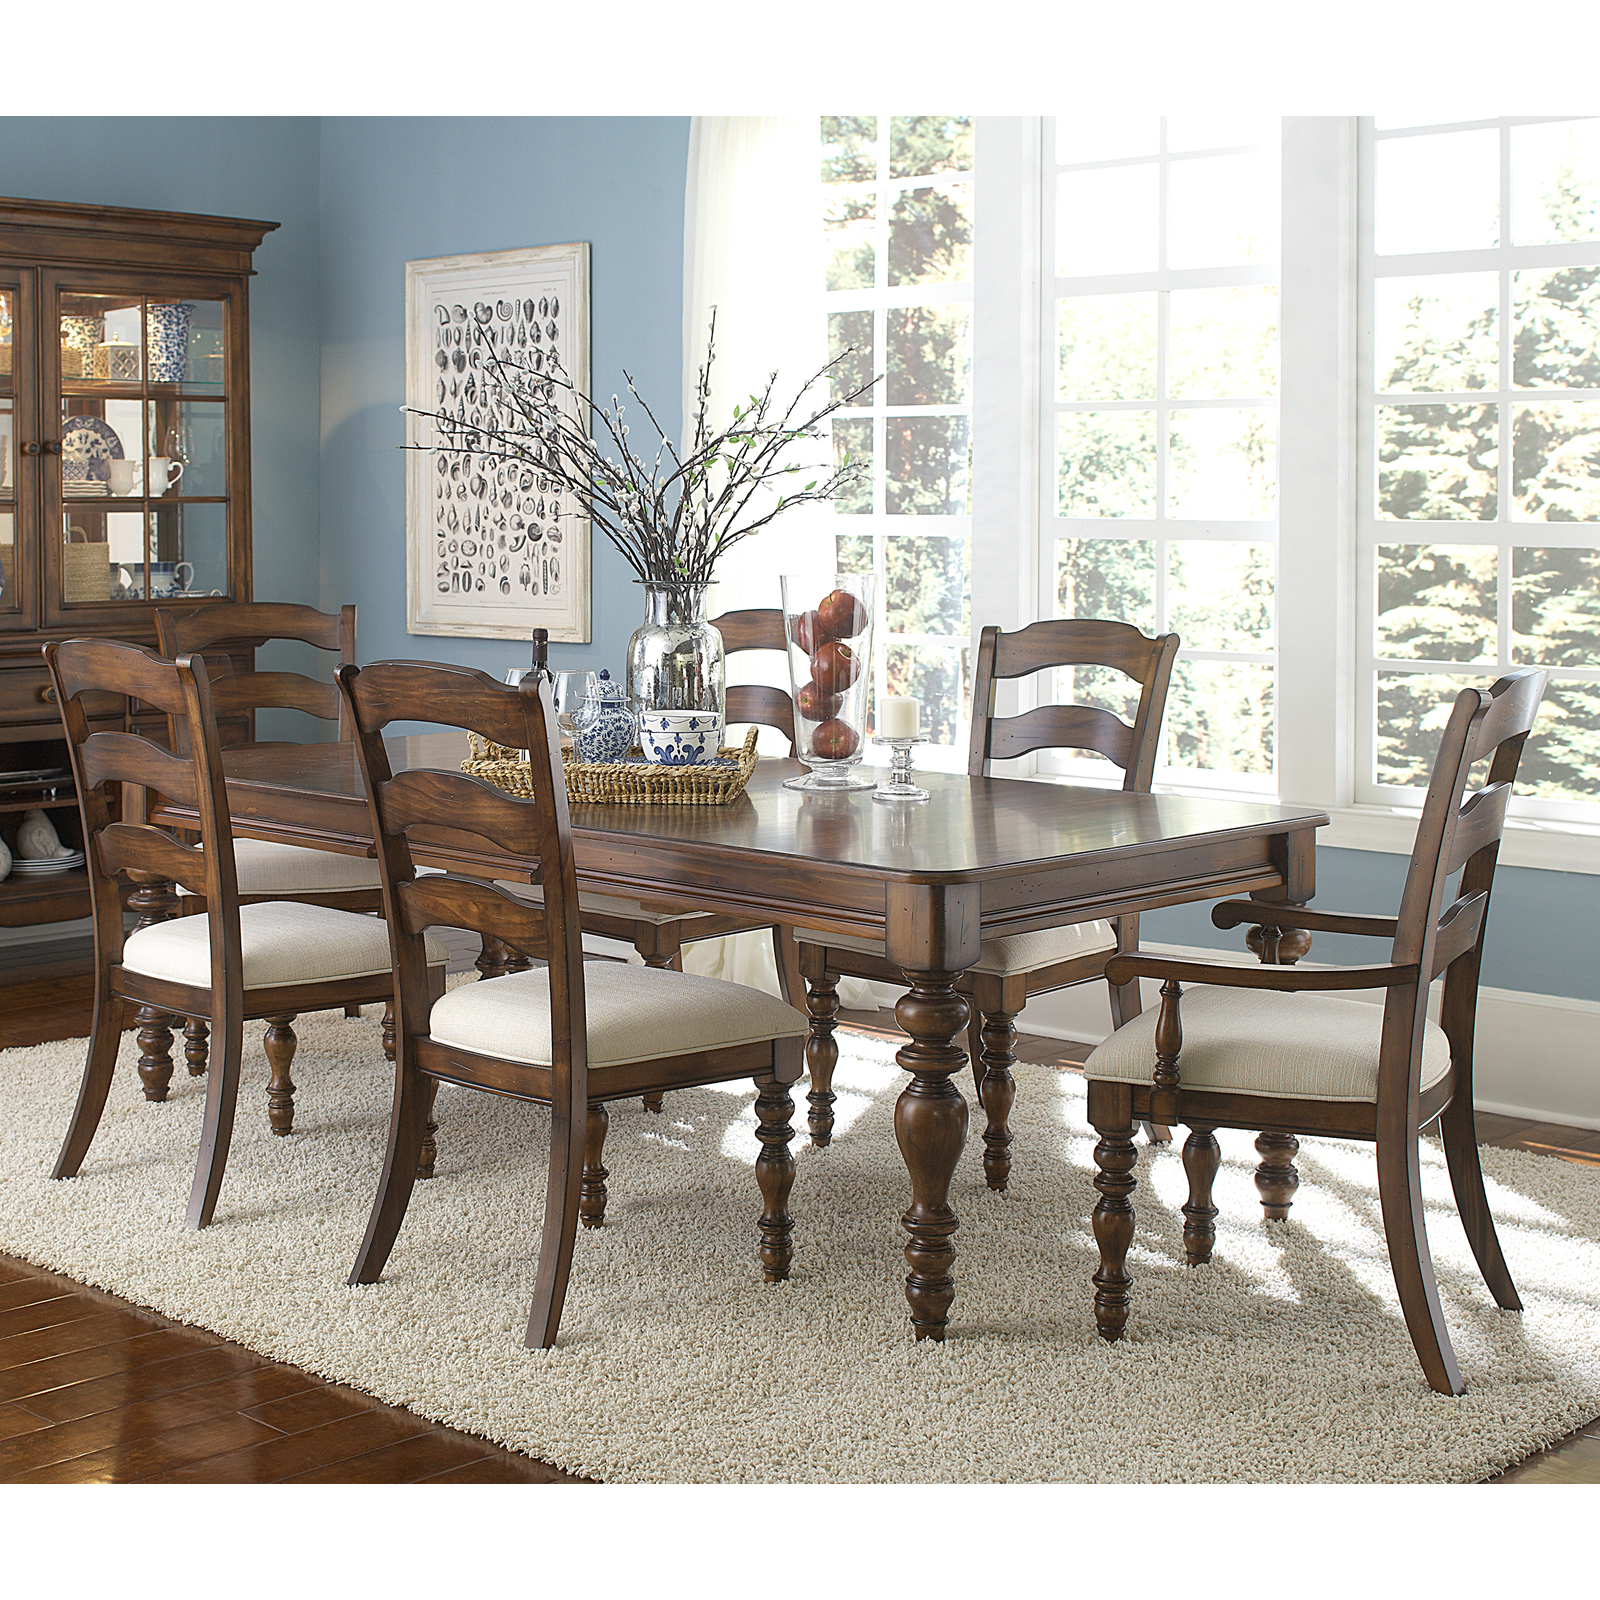 Hillsdale Furniture Hillsdale Pine Island 7 Piece Dining Table Set With  Ladder Back Side U0026 Arm